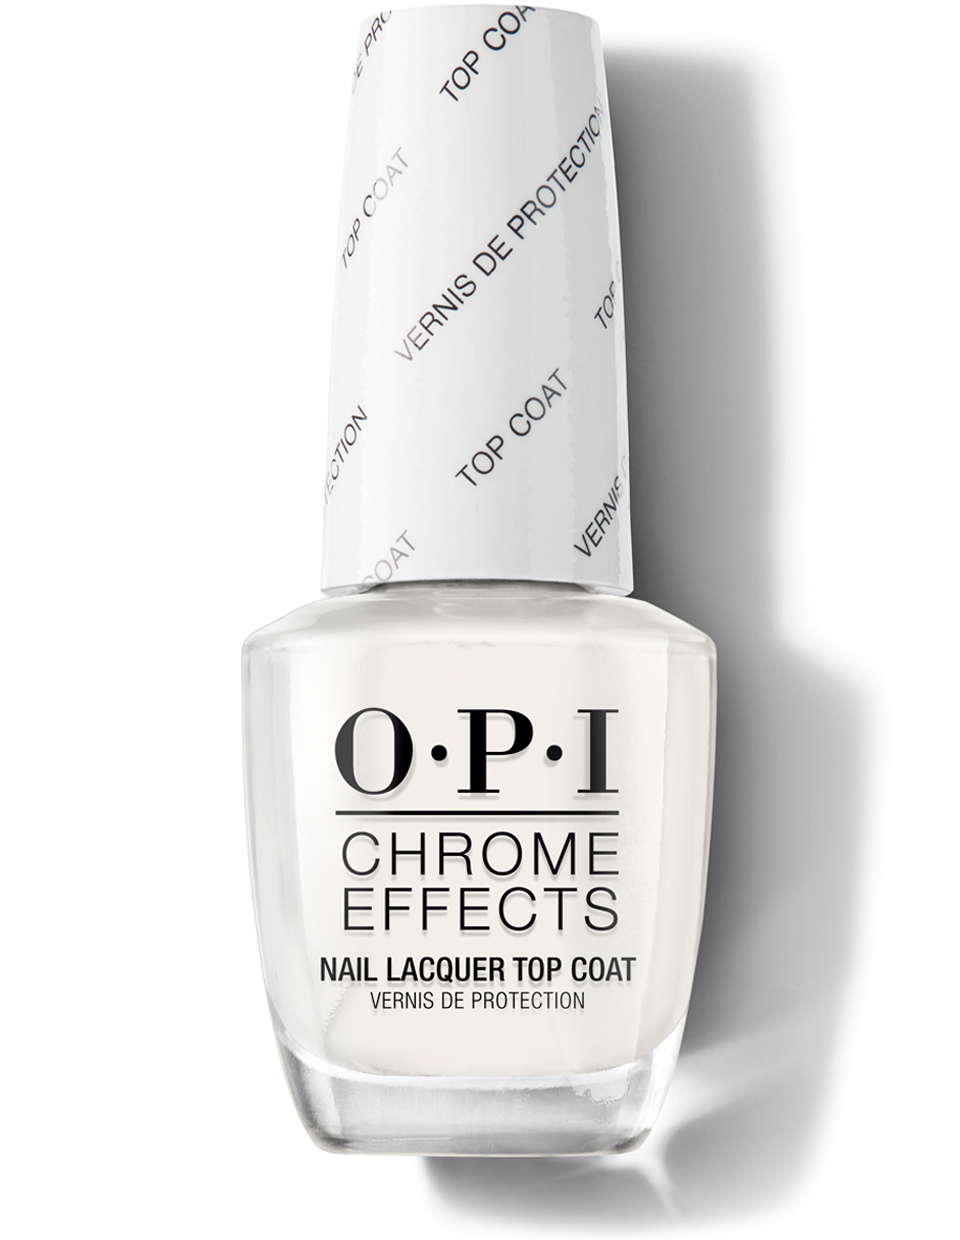 Chrome Effects Nail Lacquer Top Coat Opi